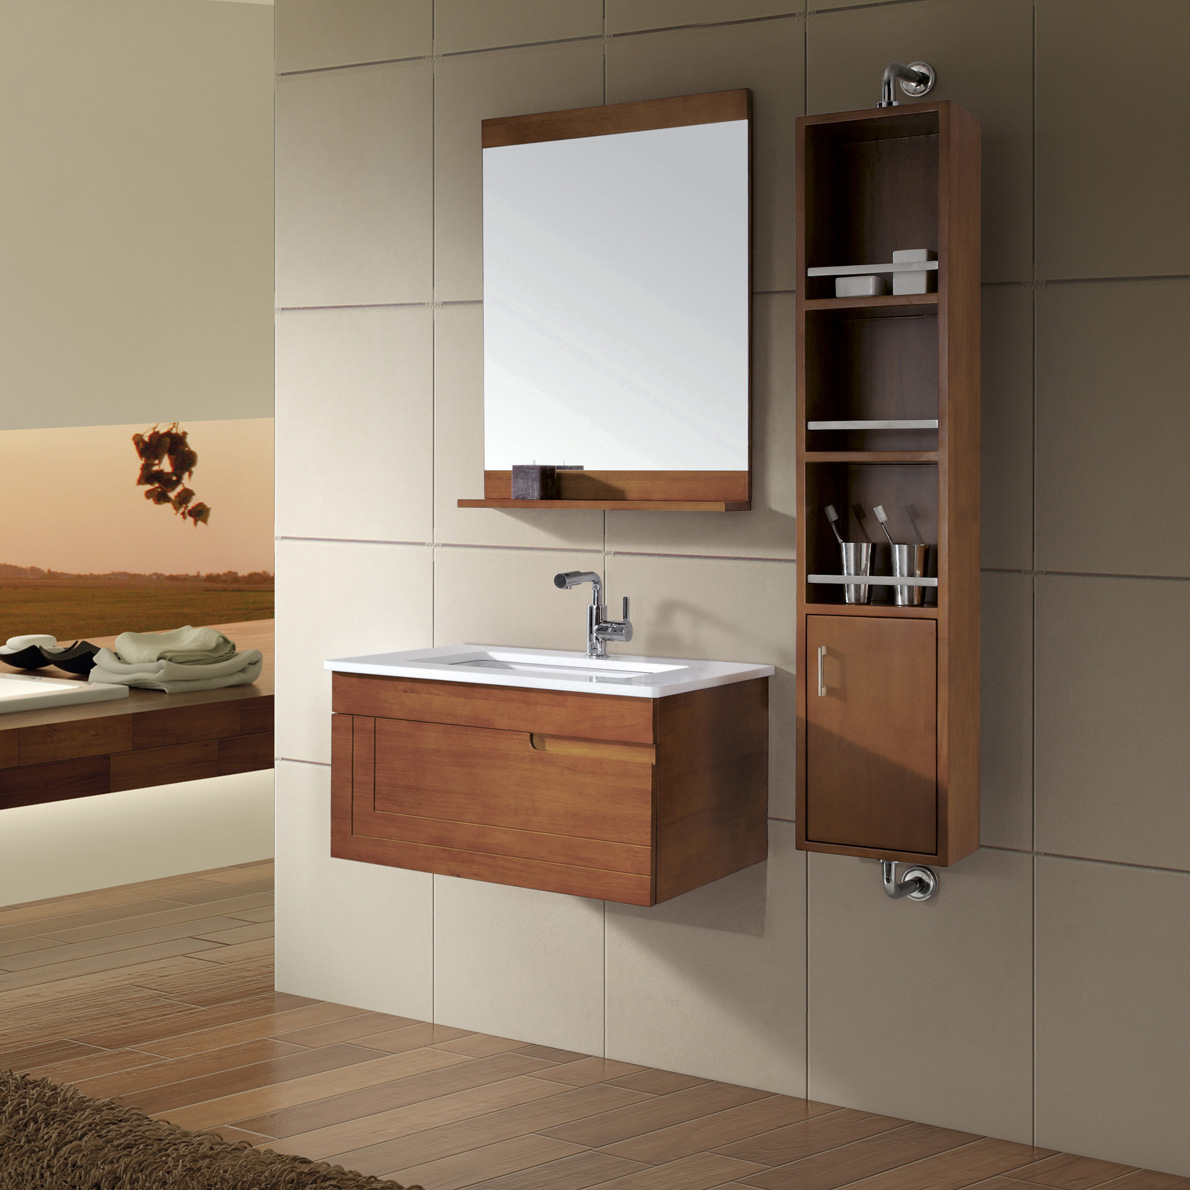 China Bathroom Cabinet Vanity Kl269 China Bathroom Cabinet Wood